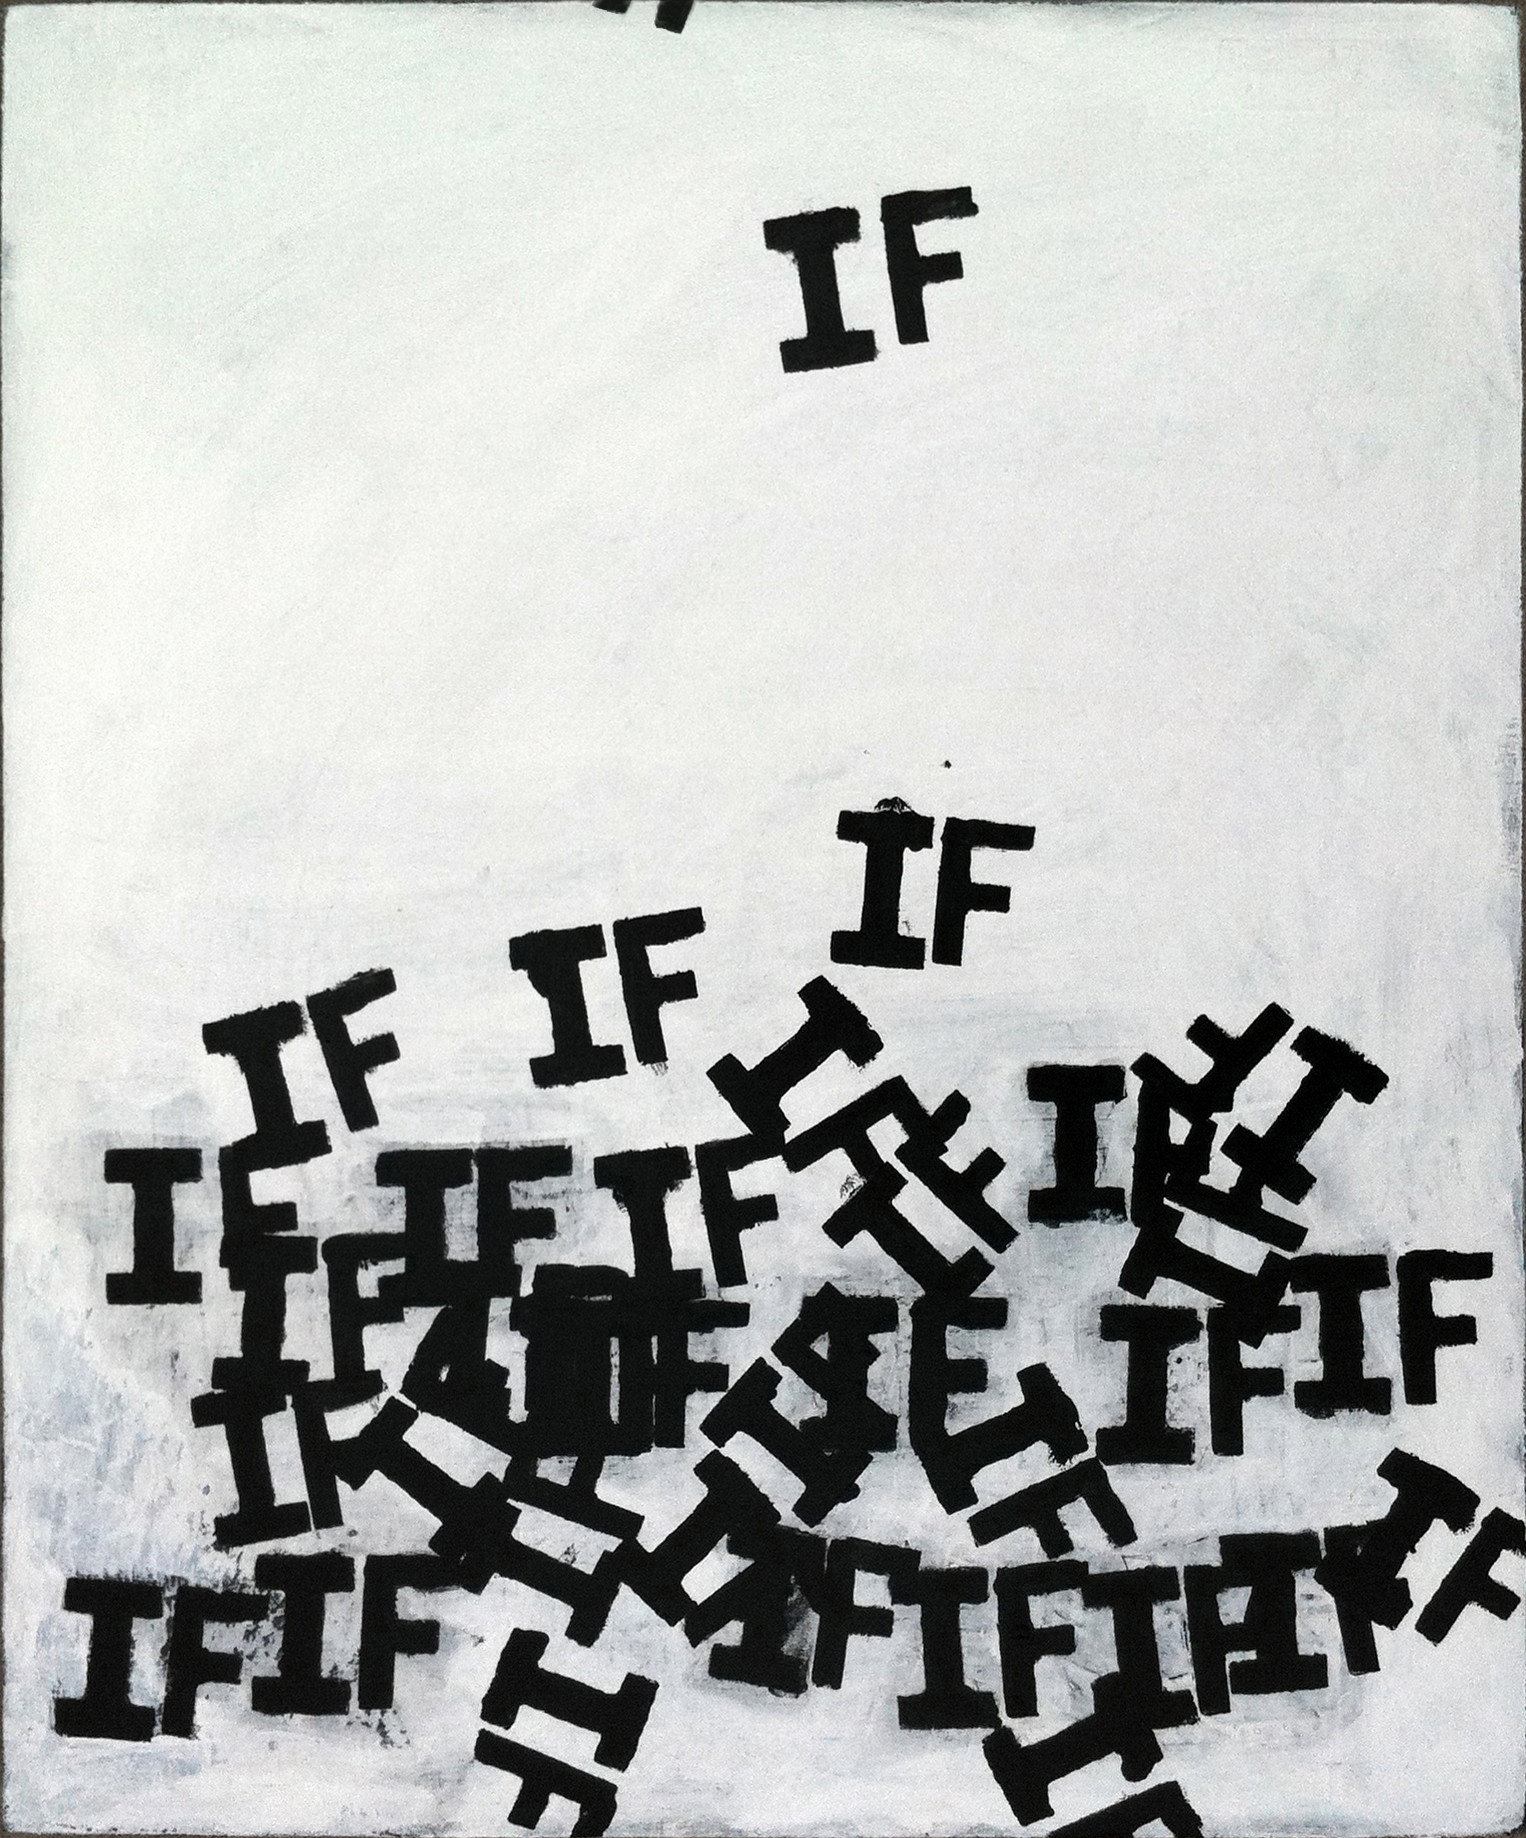 Matthew Heller  , Untitled (Falling Ifs),  2011, Acrylic on canvas, 24 x 20 inches